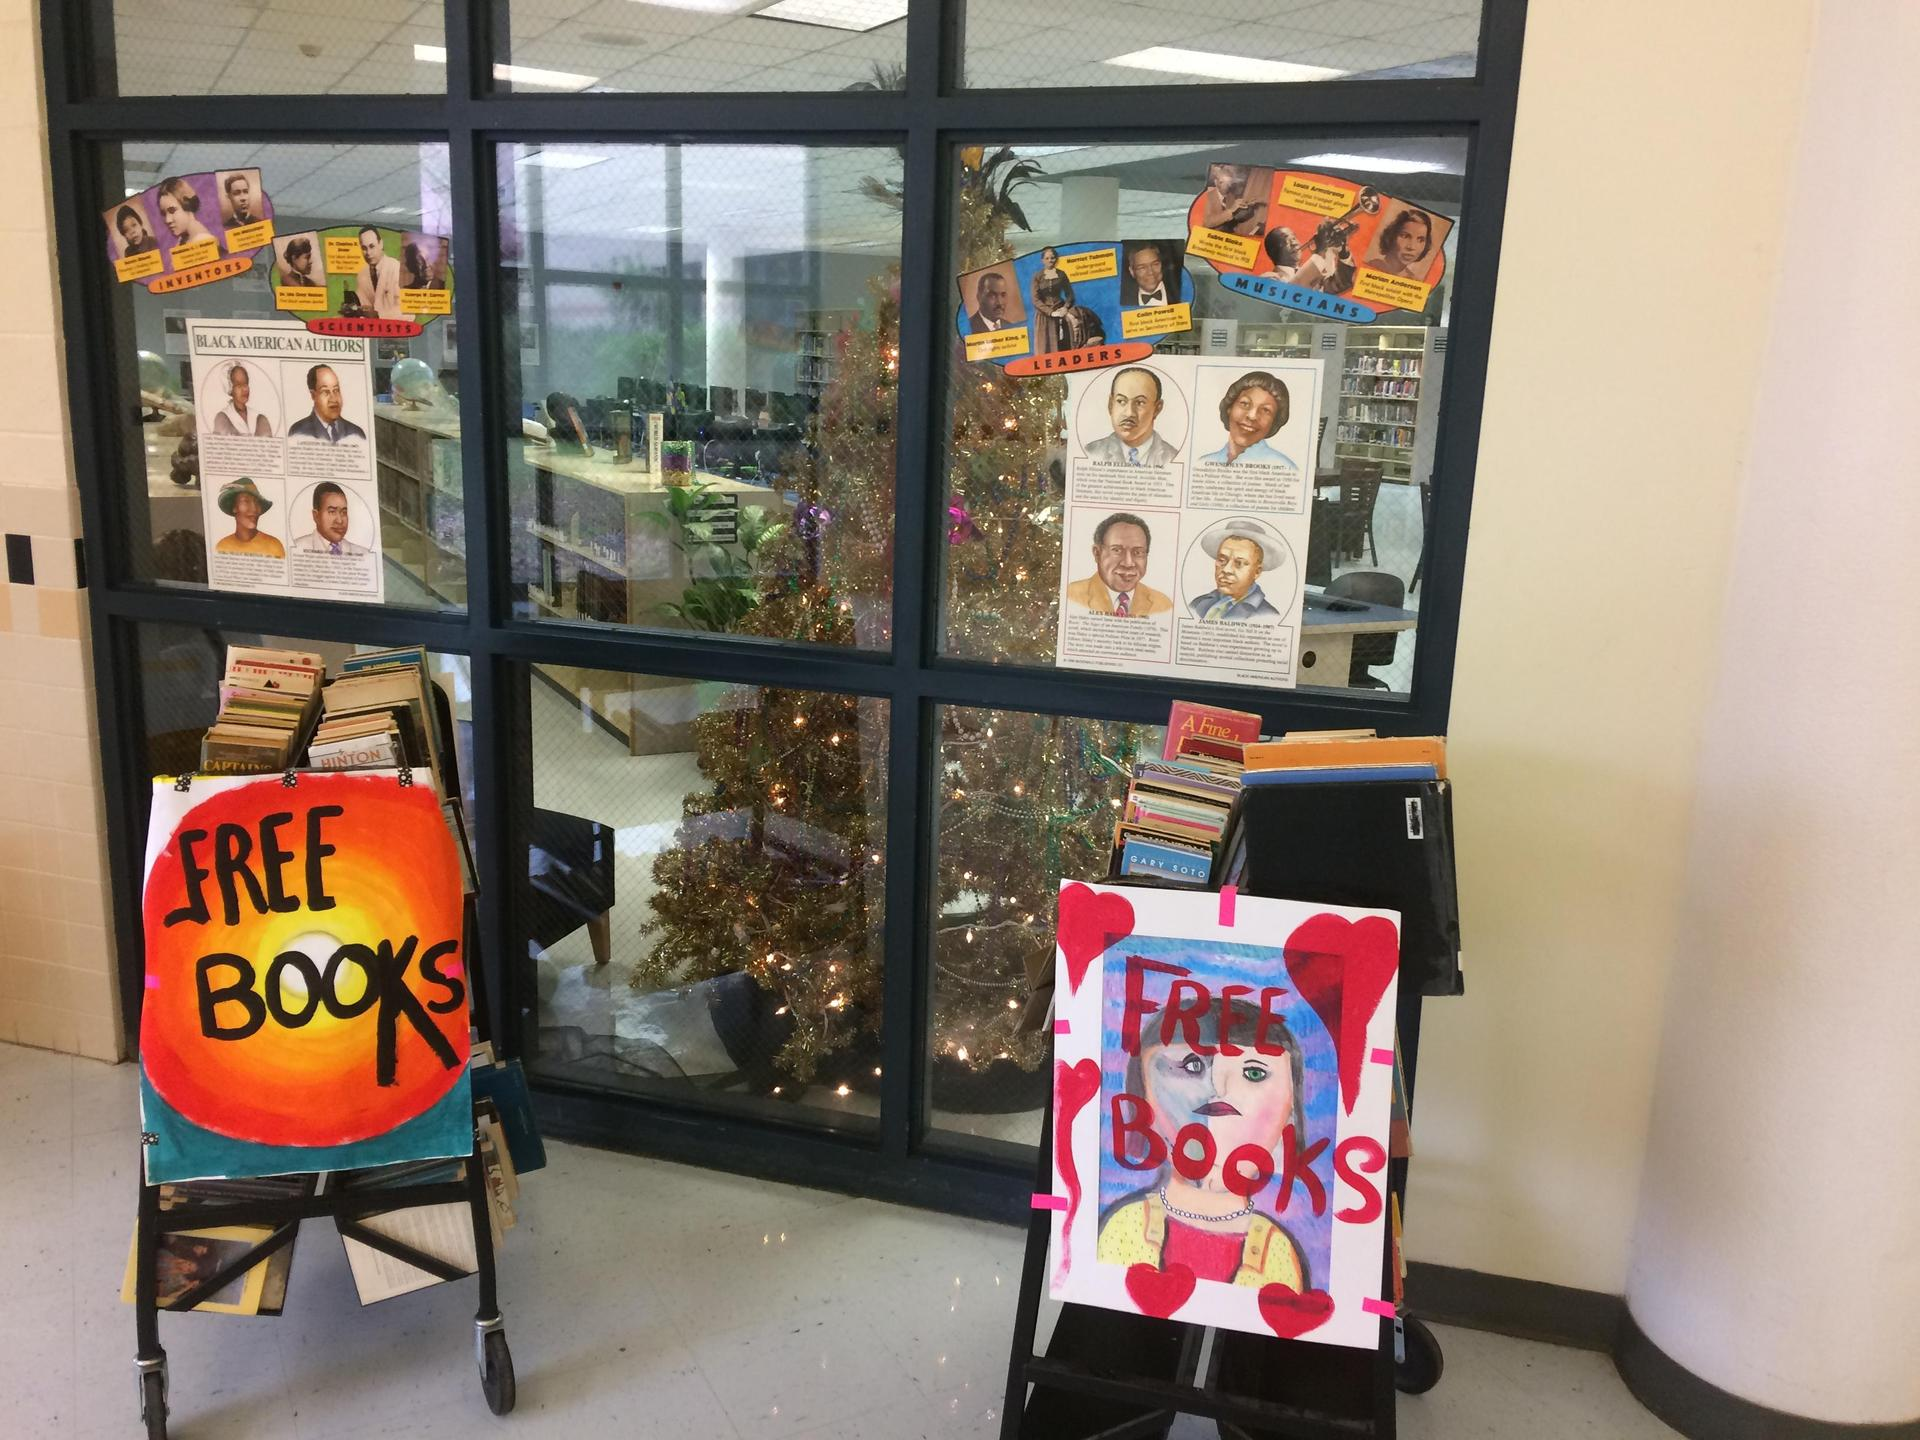 Free Books for students